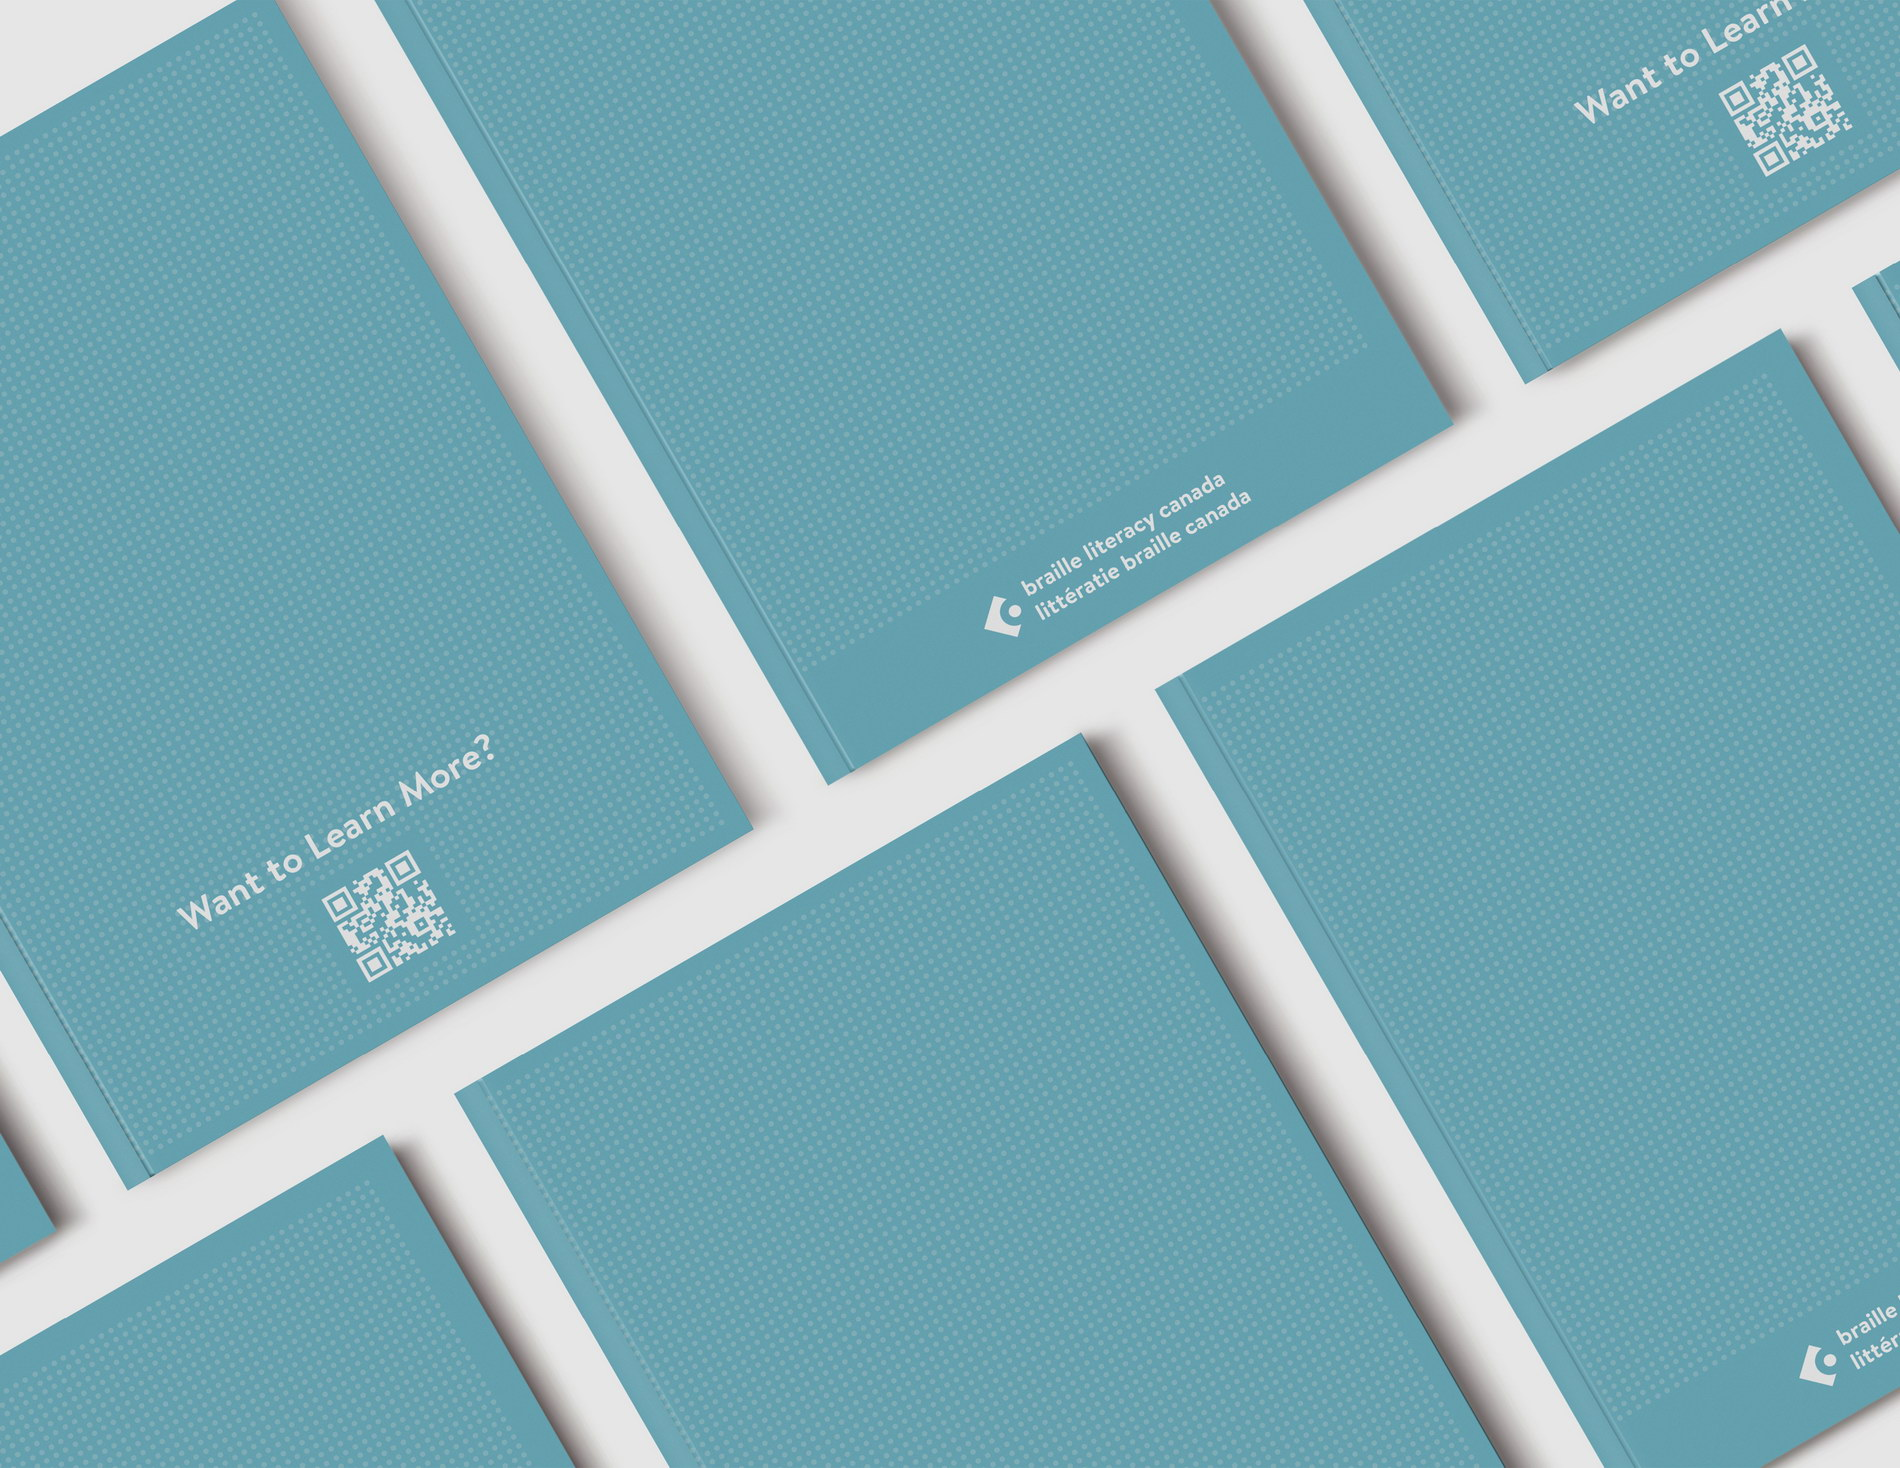 haluka-yagi--annual-report-design--braille-literacy-canada1.jpg